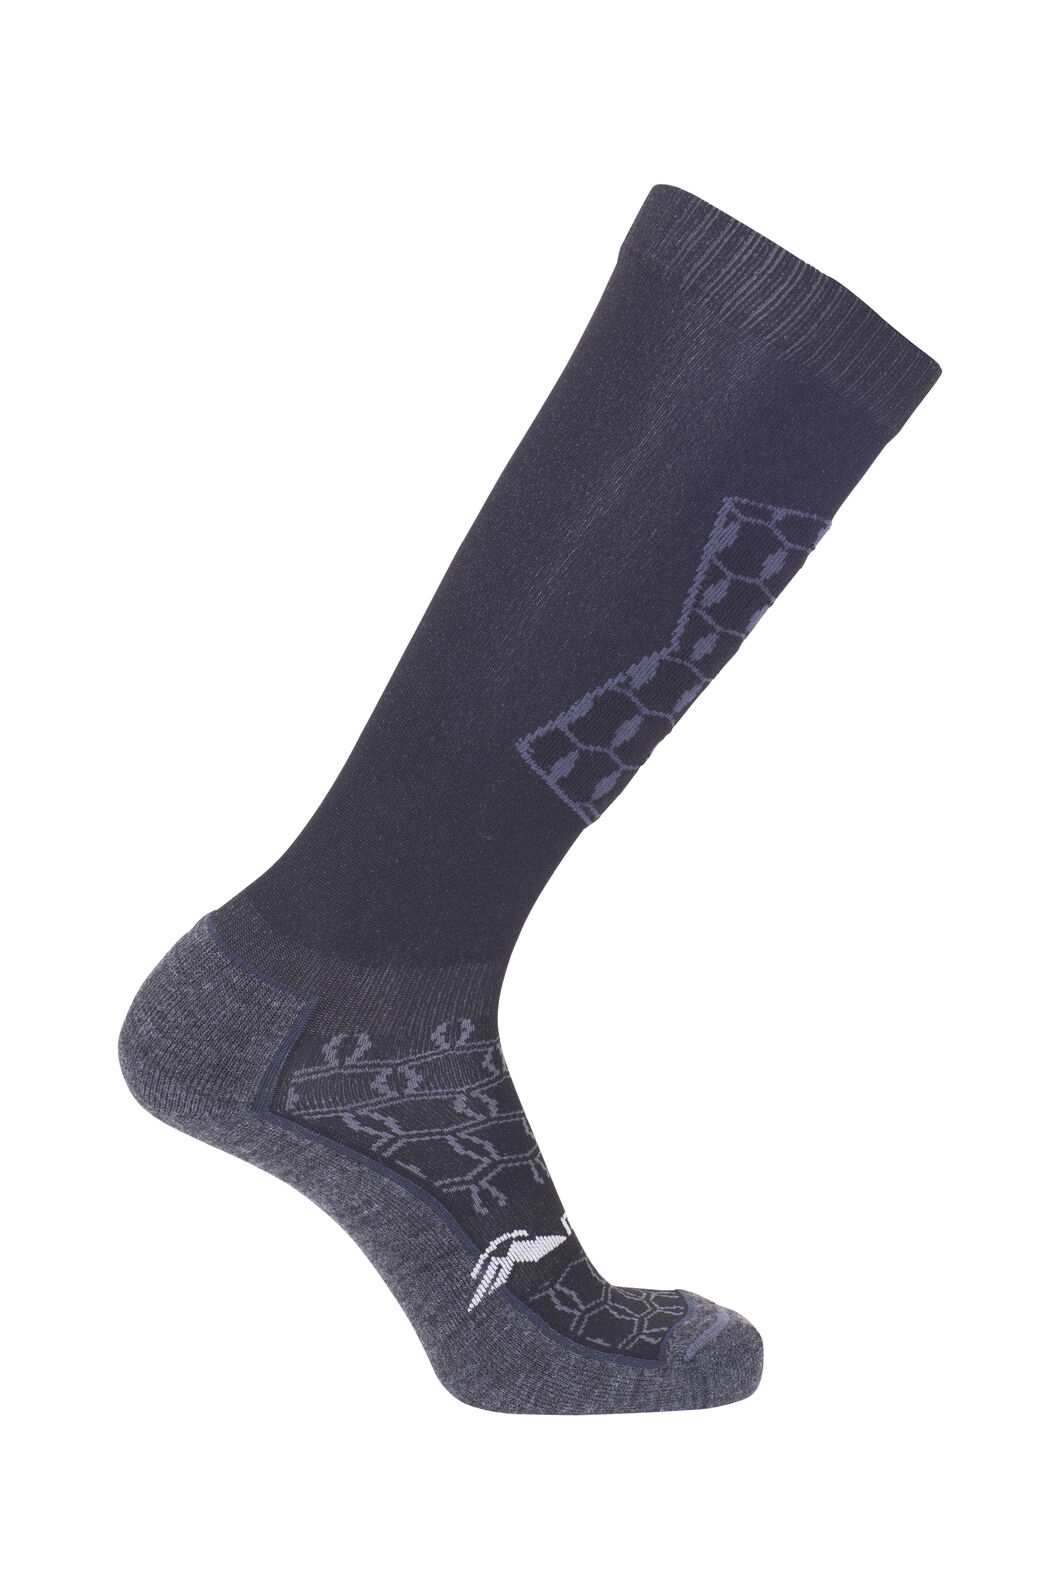 Macpac Tech Ski Socks, Black/Charcoal, hi-res